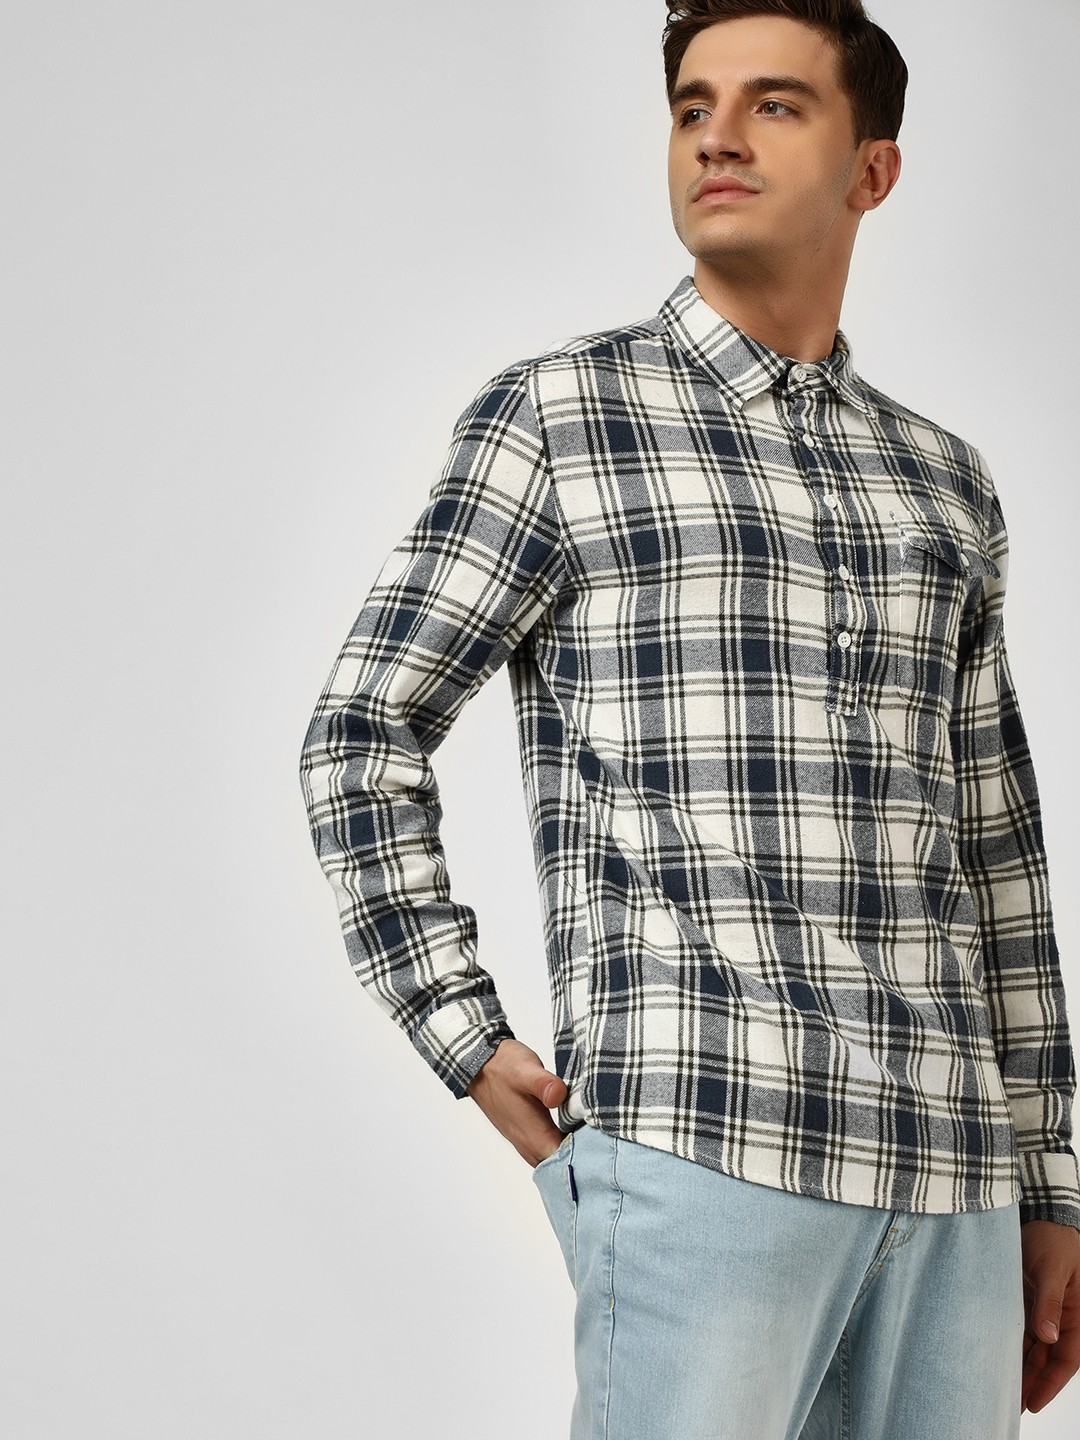 Blue Saint Multi Half Placket Casual Check Shirt 1